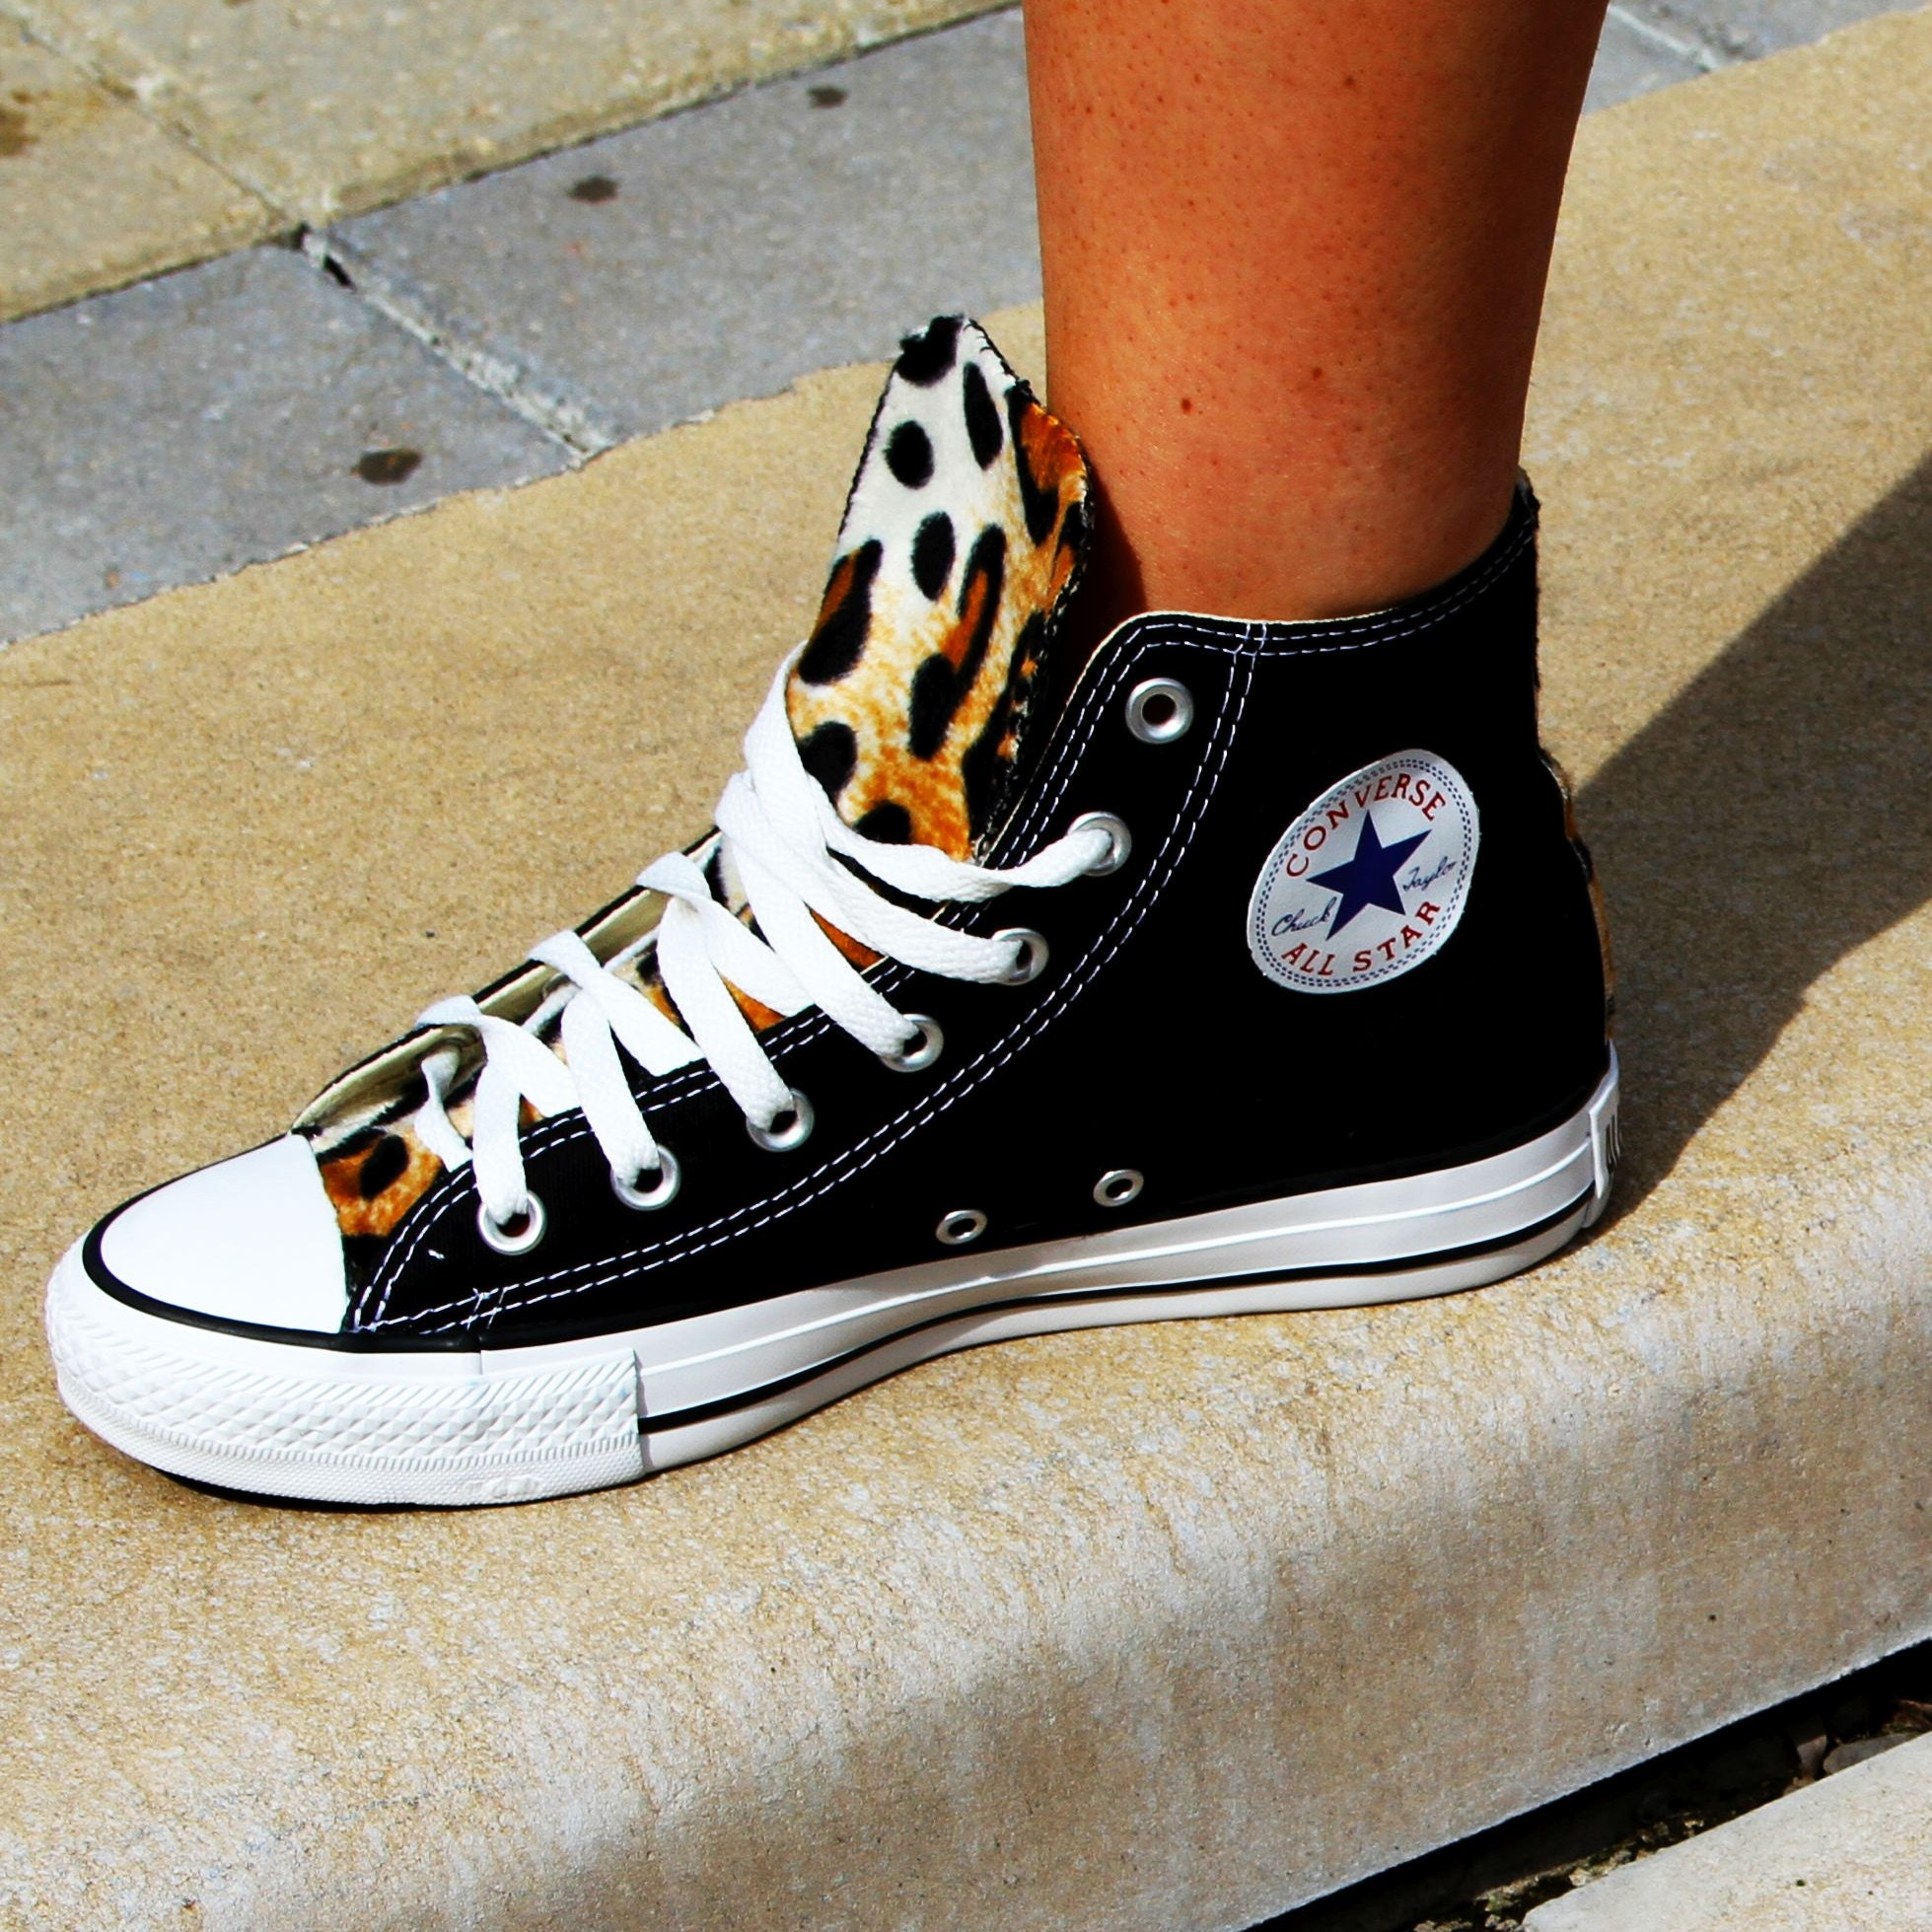 Customized Converse Chuck Taylor Shoes von LoveChuckTaylors